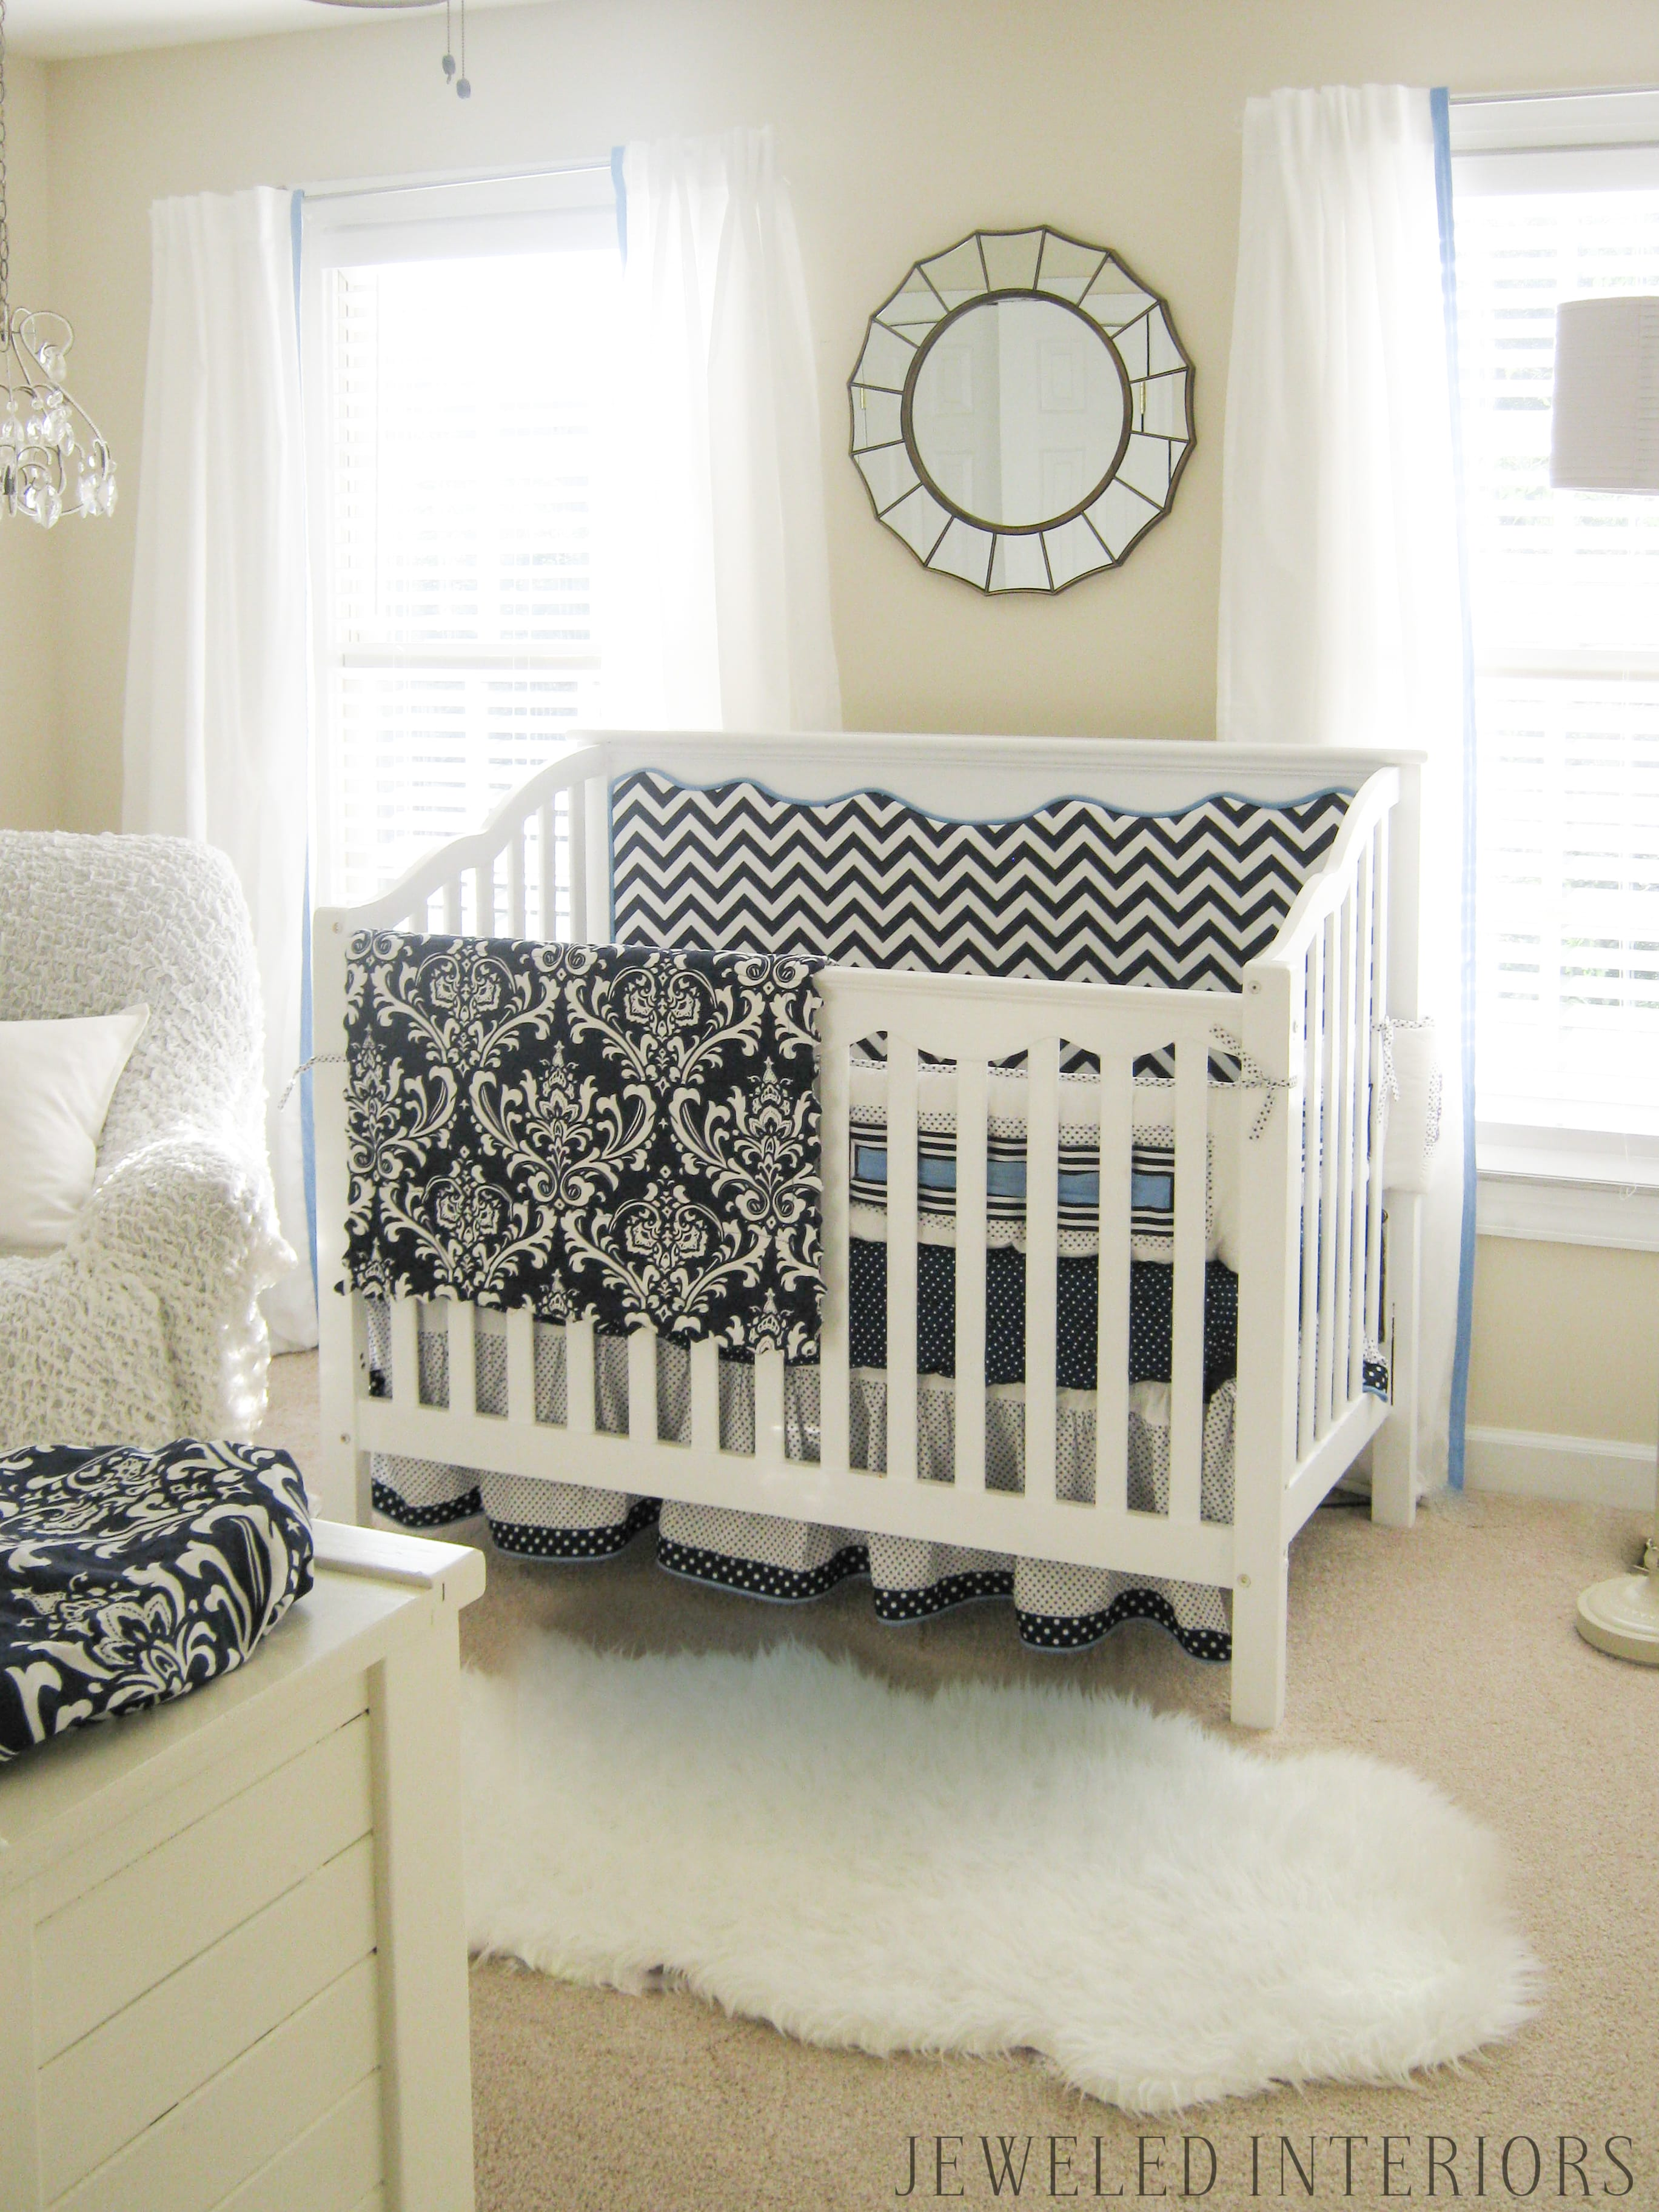 3 Tips for Combining a little boy and little girl's bedroom: Jeweledinteriors, jeweledinteriors, bedroom, bed, crib, toddler, british, union, jack, french, twins, rug, chandelier, dresser, chair, DIY, functional, unisex, sheepskin